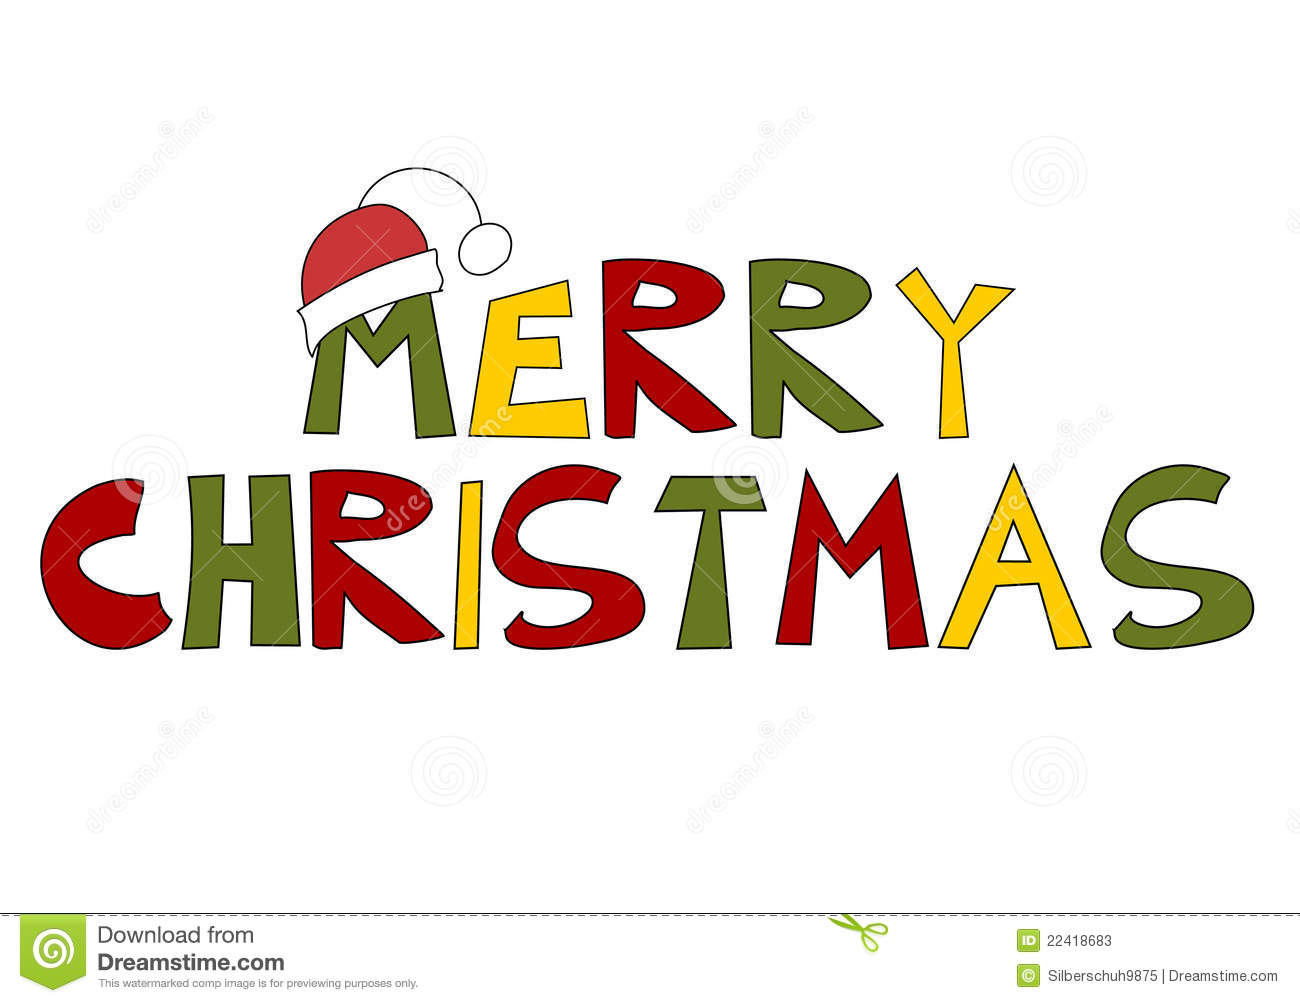 Merry Christmas Text.Christmas Text Merry Christmas Stock Vector Illustration